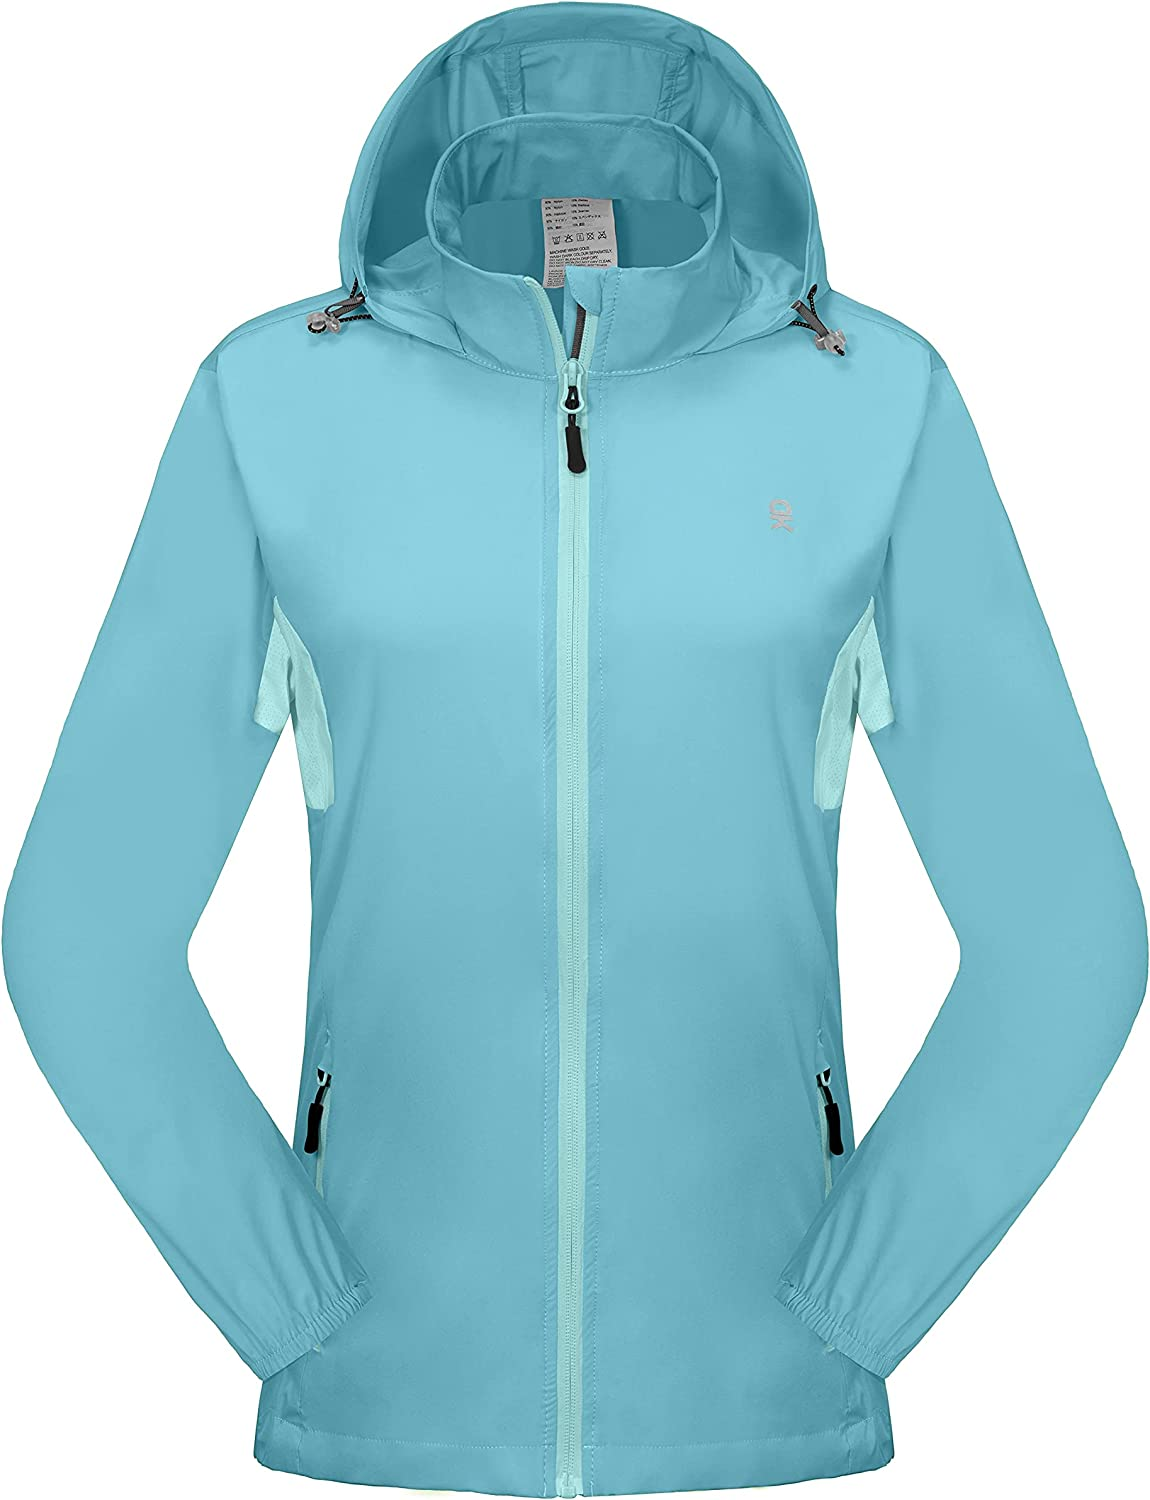 Little Donkey Andy Women's UPF Sun Protection Jacket High order 50 Running Super special price